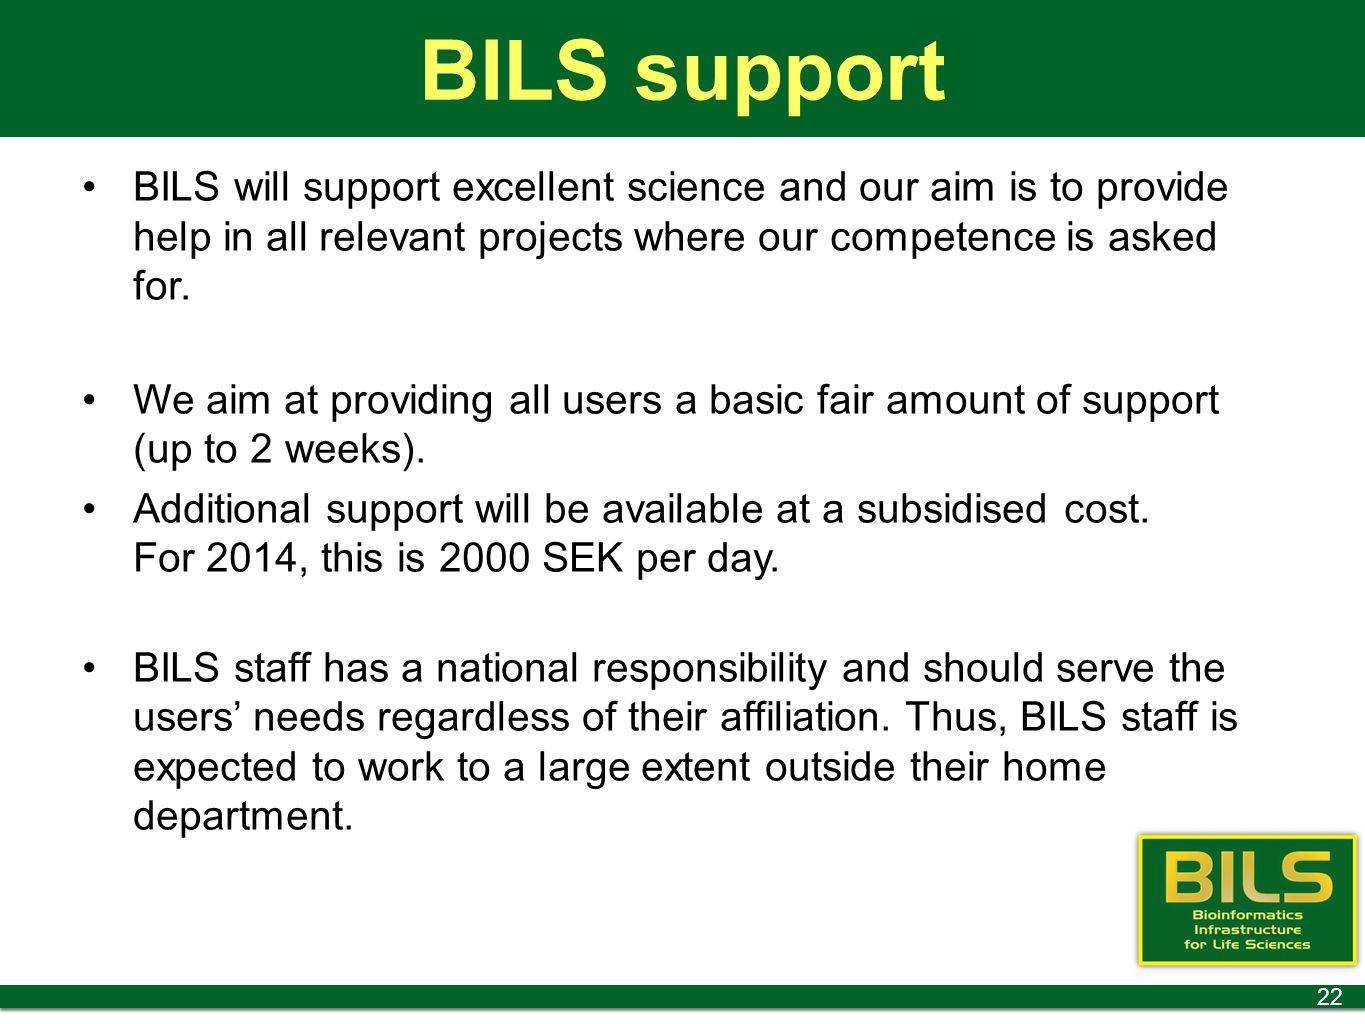 BILS support BILS will support excellent science and our aim is to provide help in all relevant projects where our competence is asked for.